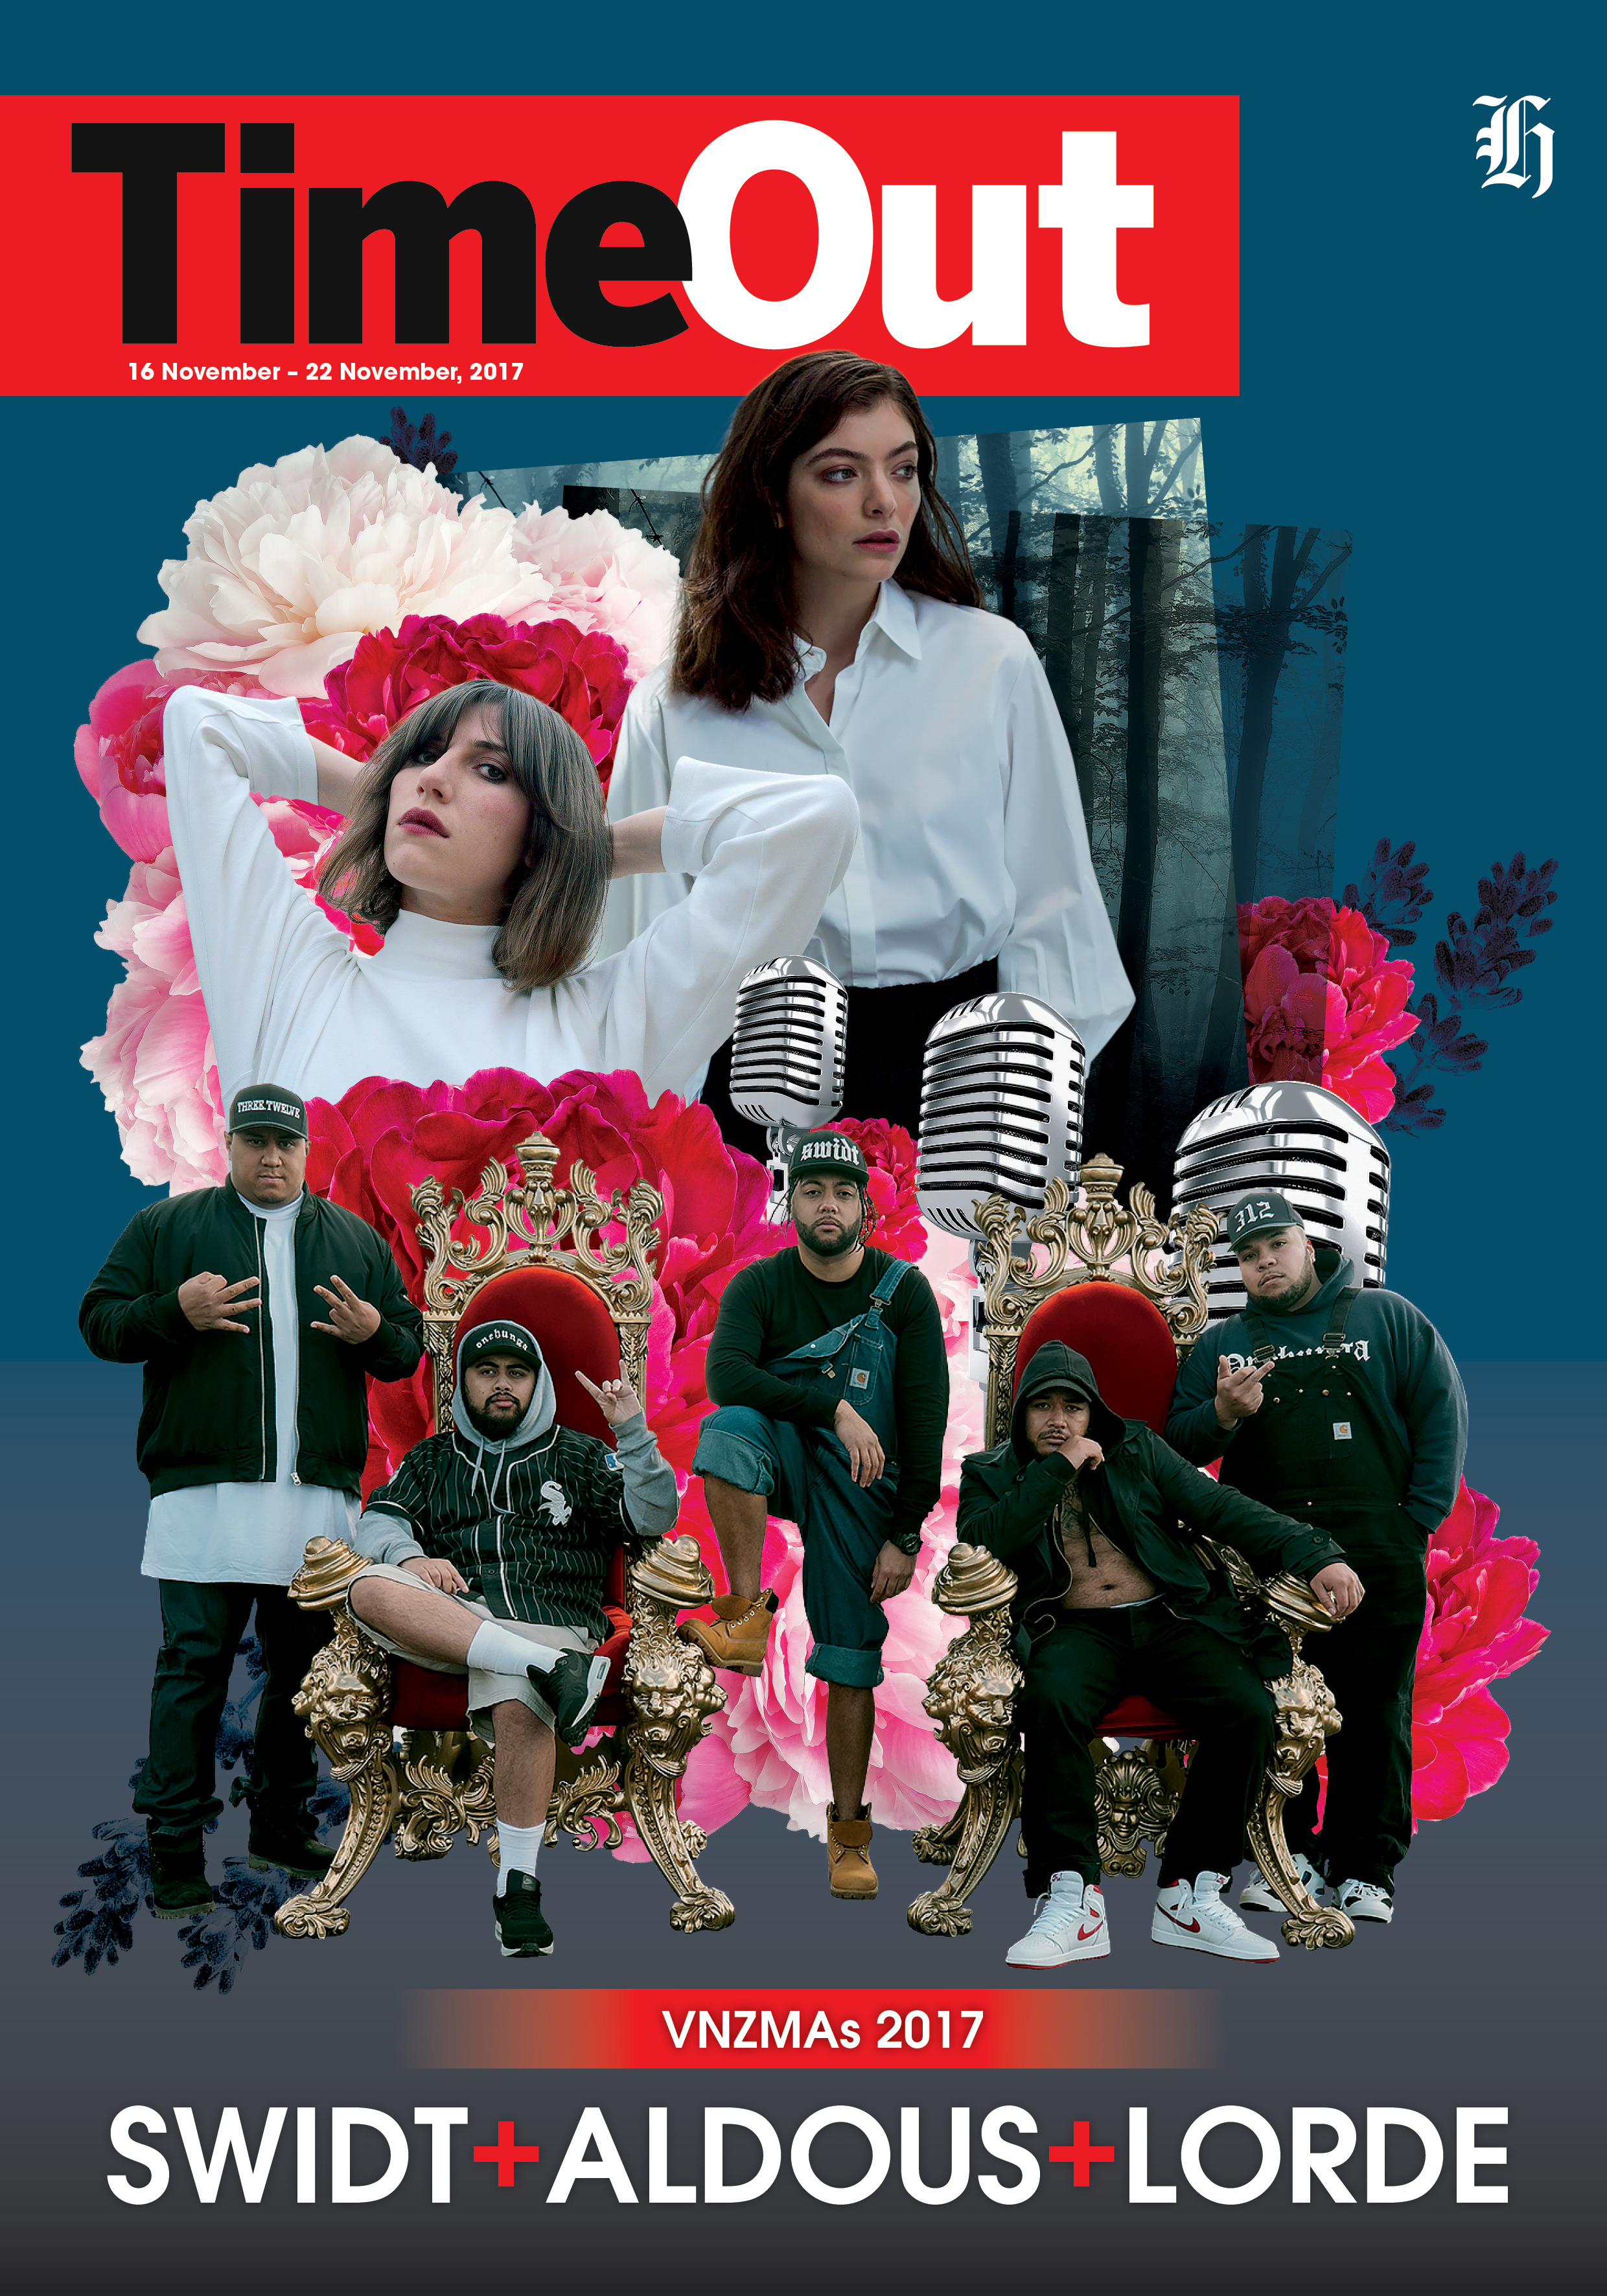 06142_TimeOut_16 Nov Cover_HiRes.jpg